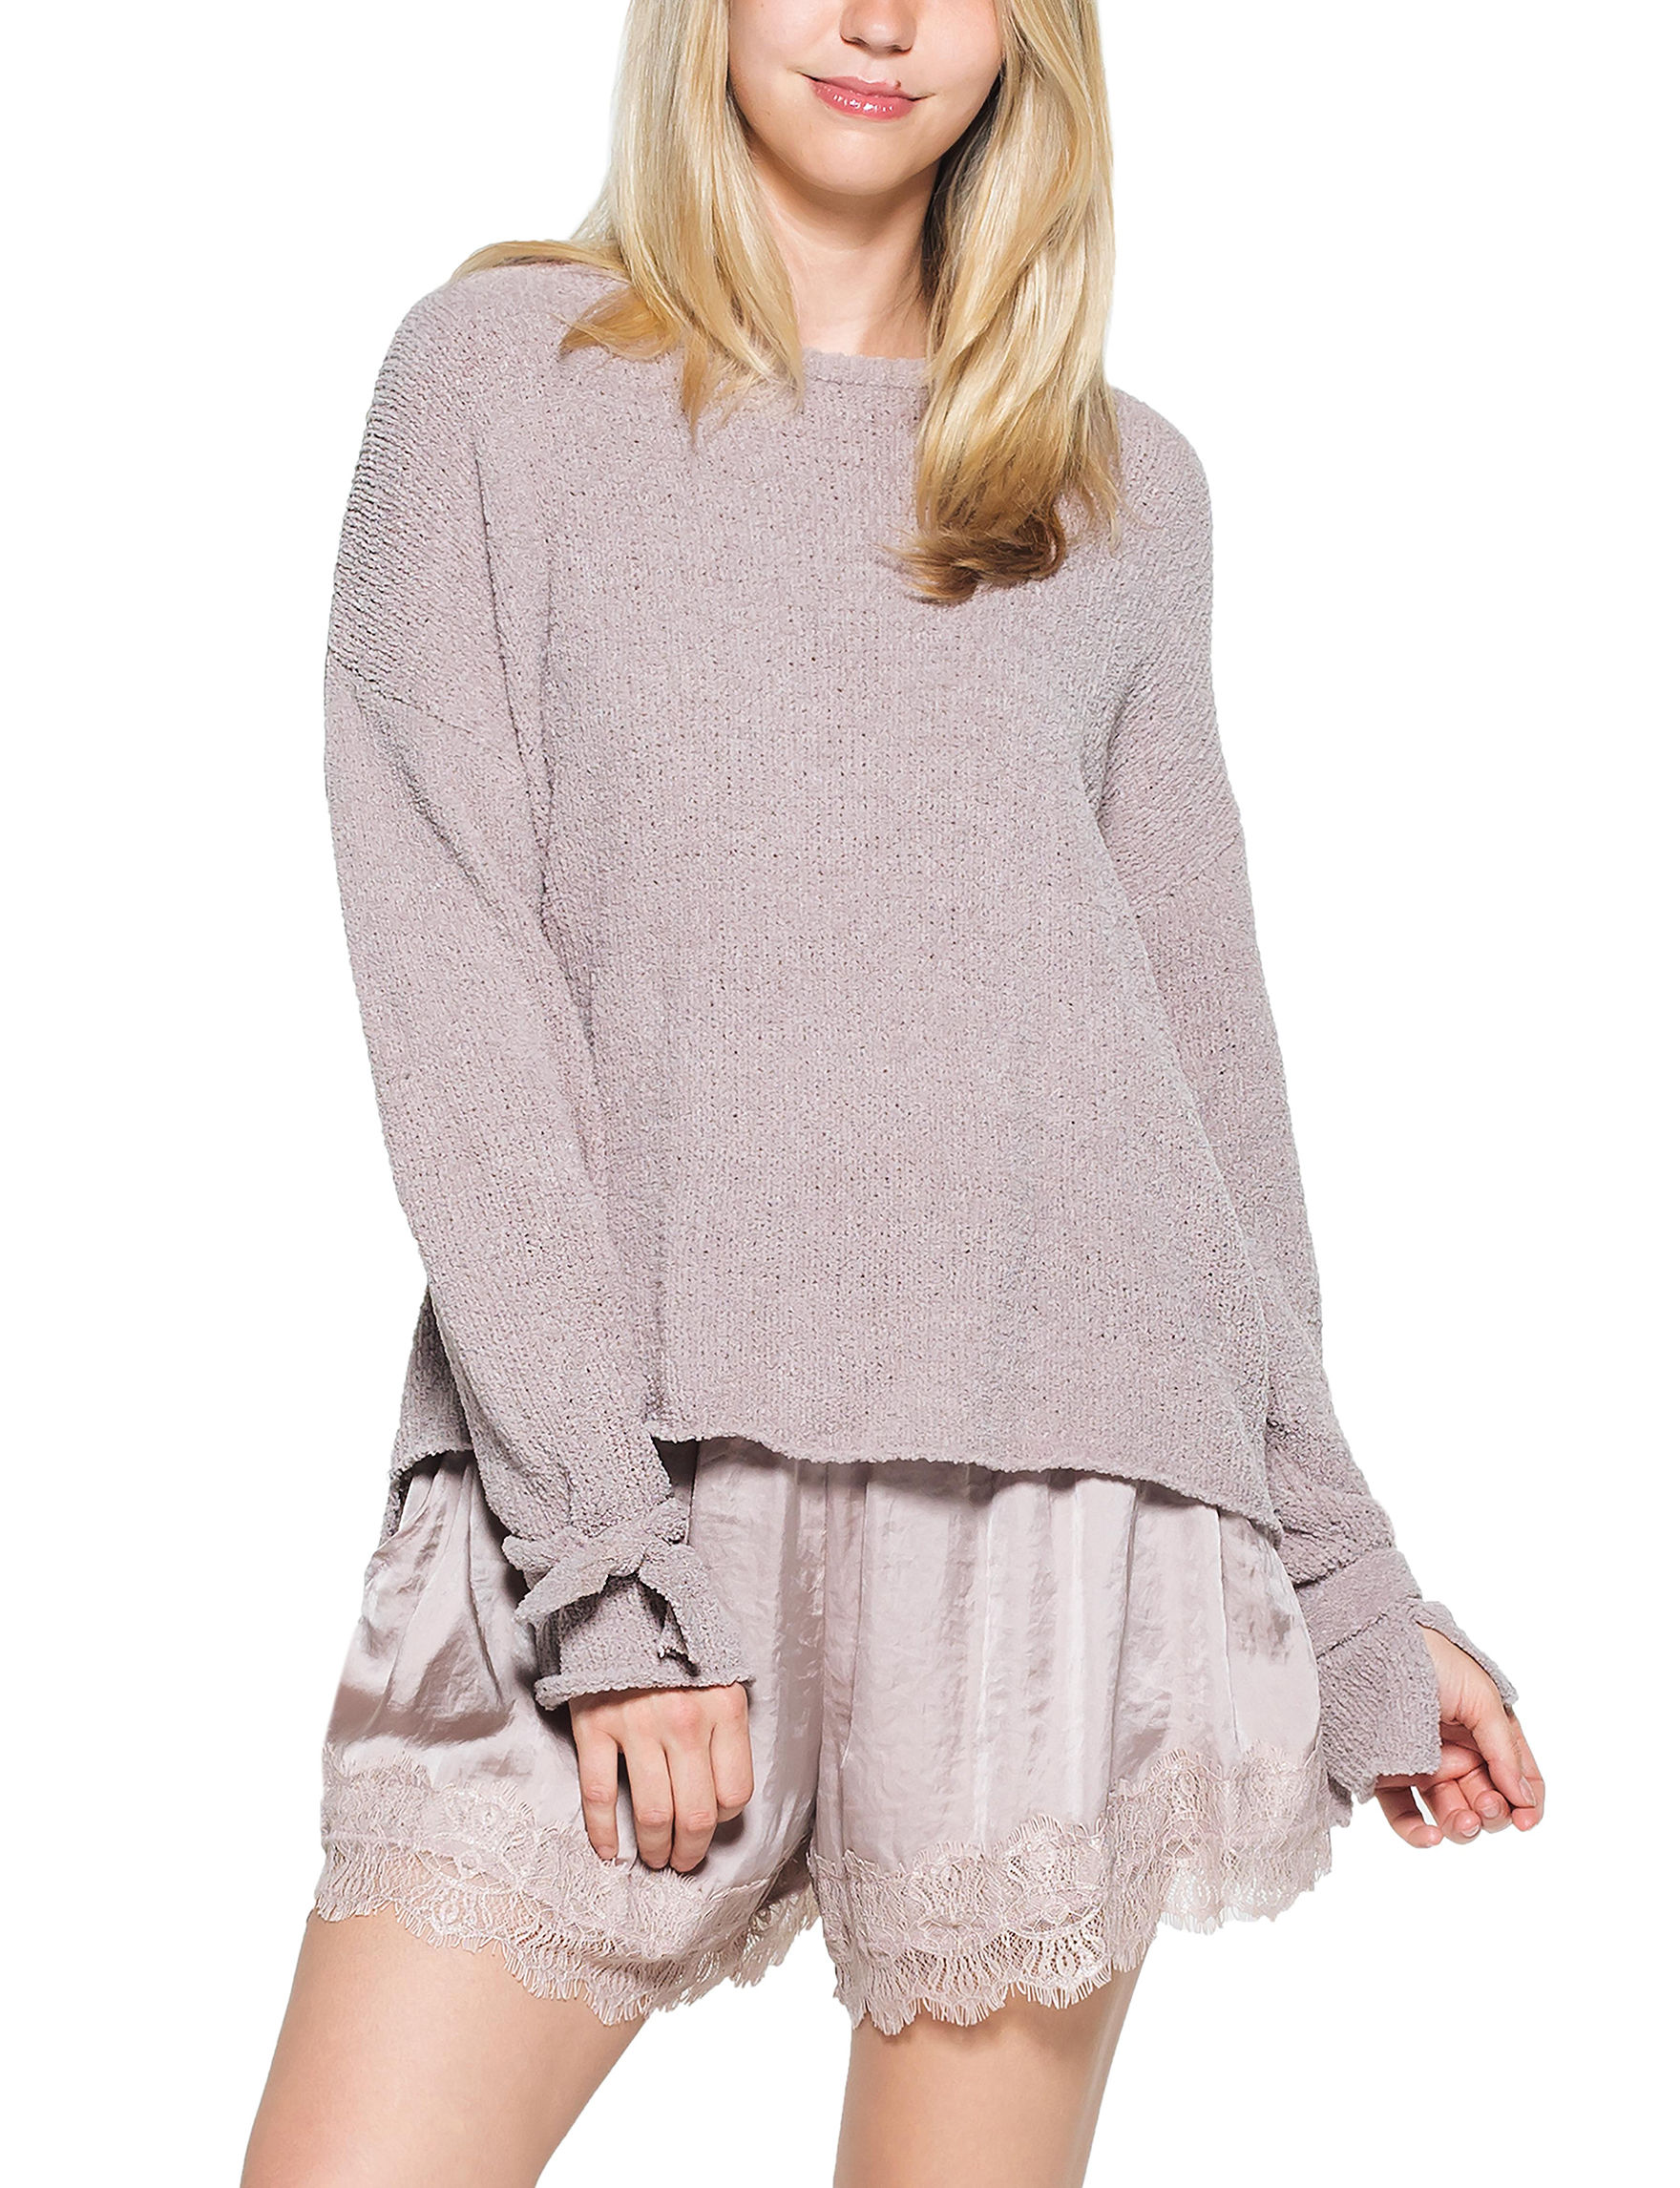 C + J Collections Medium Pink Pull-overs